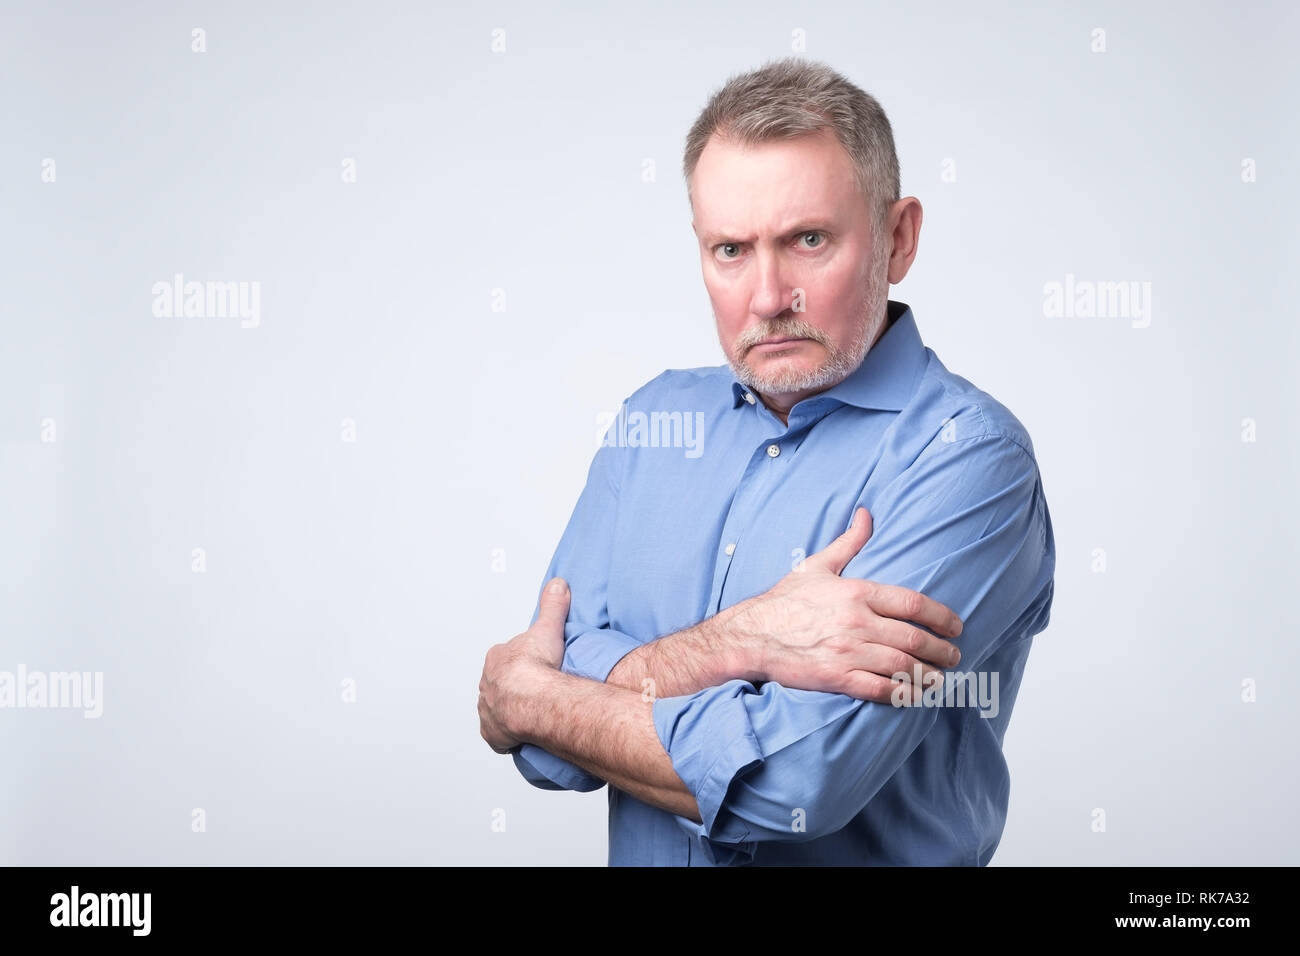 Serious senior man with folded arms and a deadpan expression posing on grey wall - Stock Image